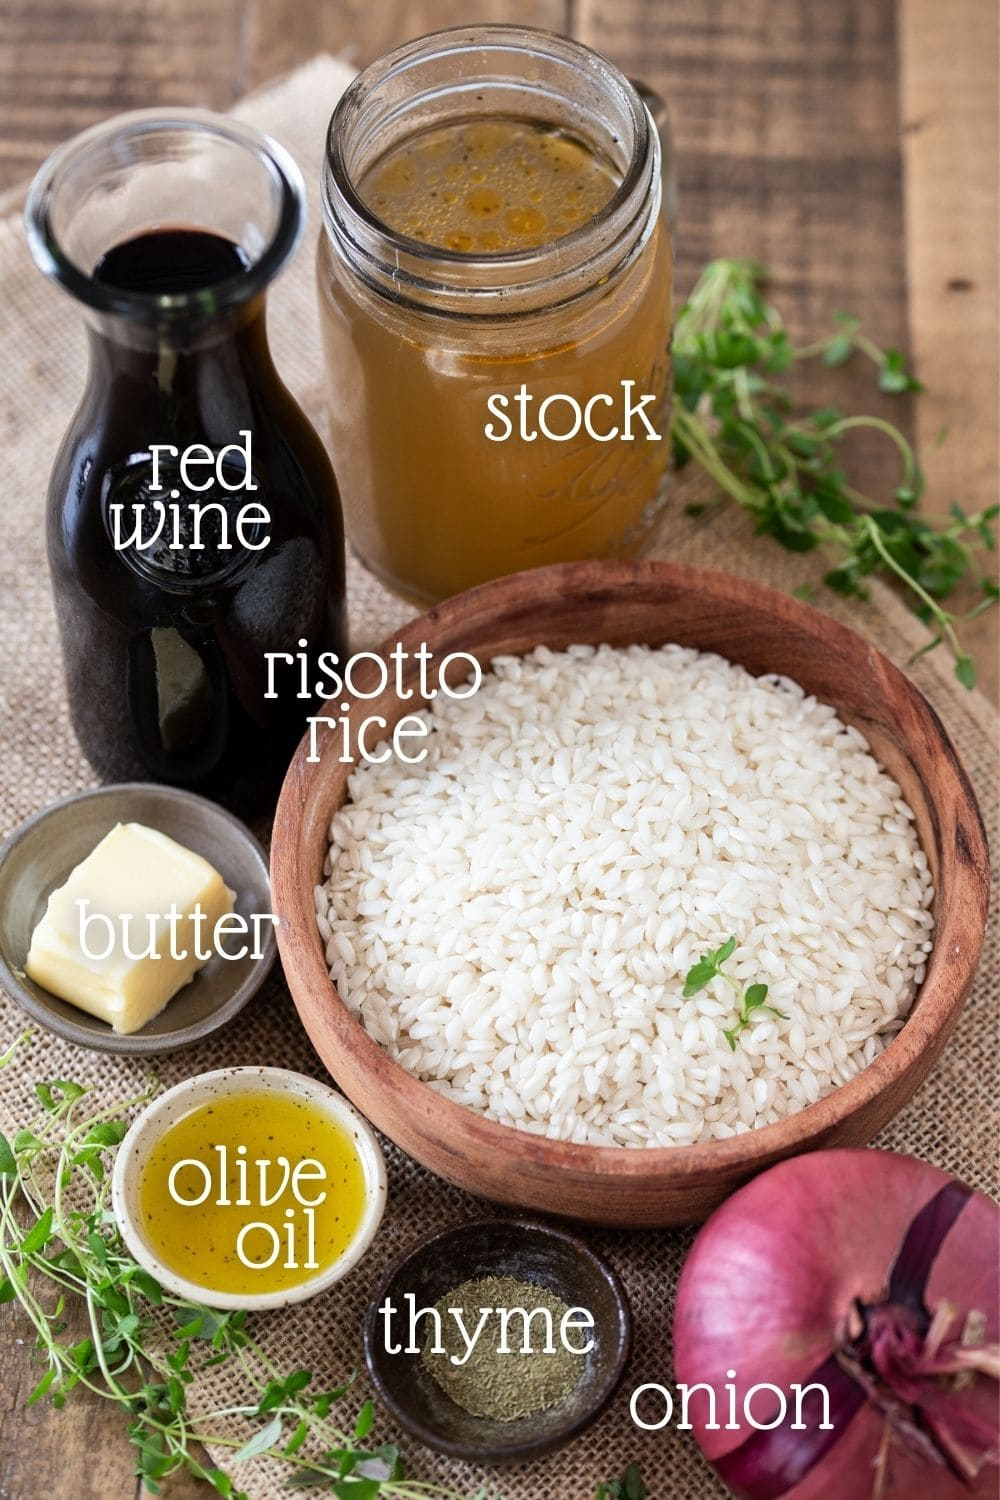 The ingredients needed in this recipe arraged on a wooden table.